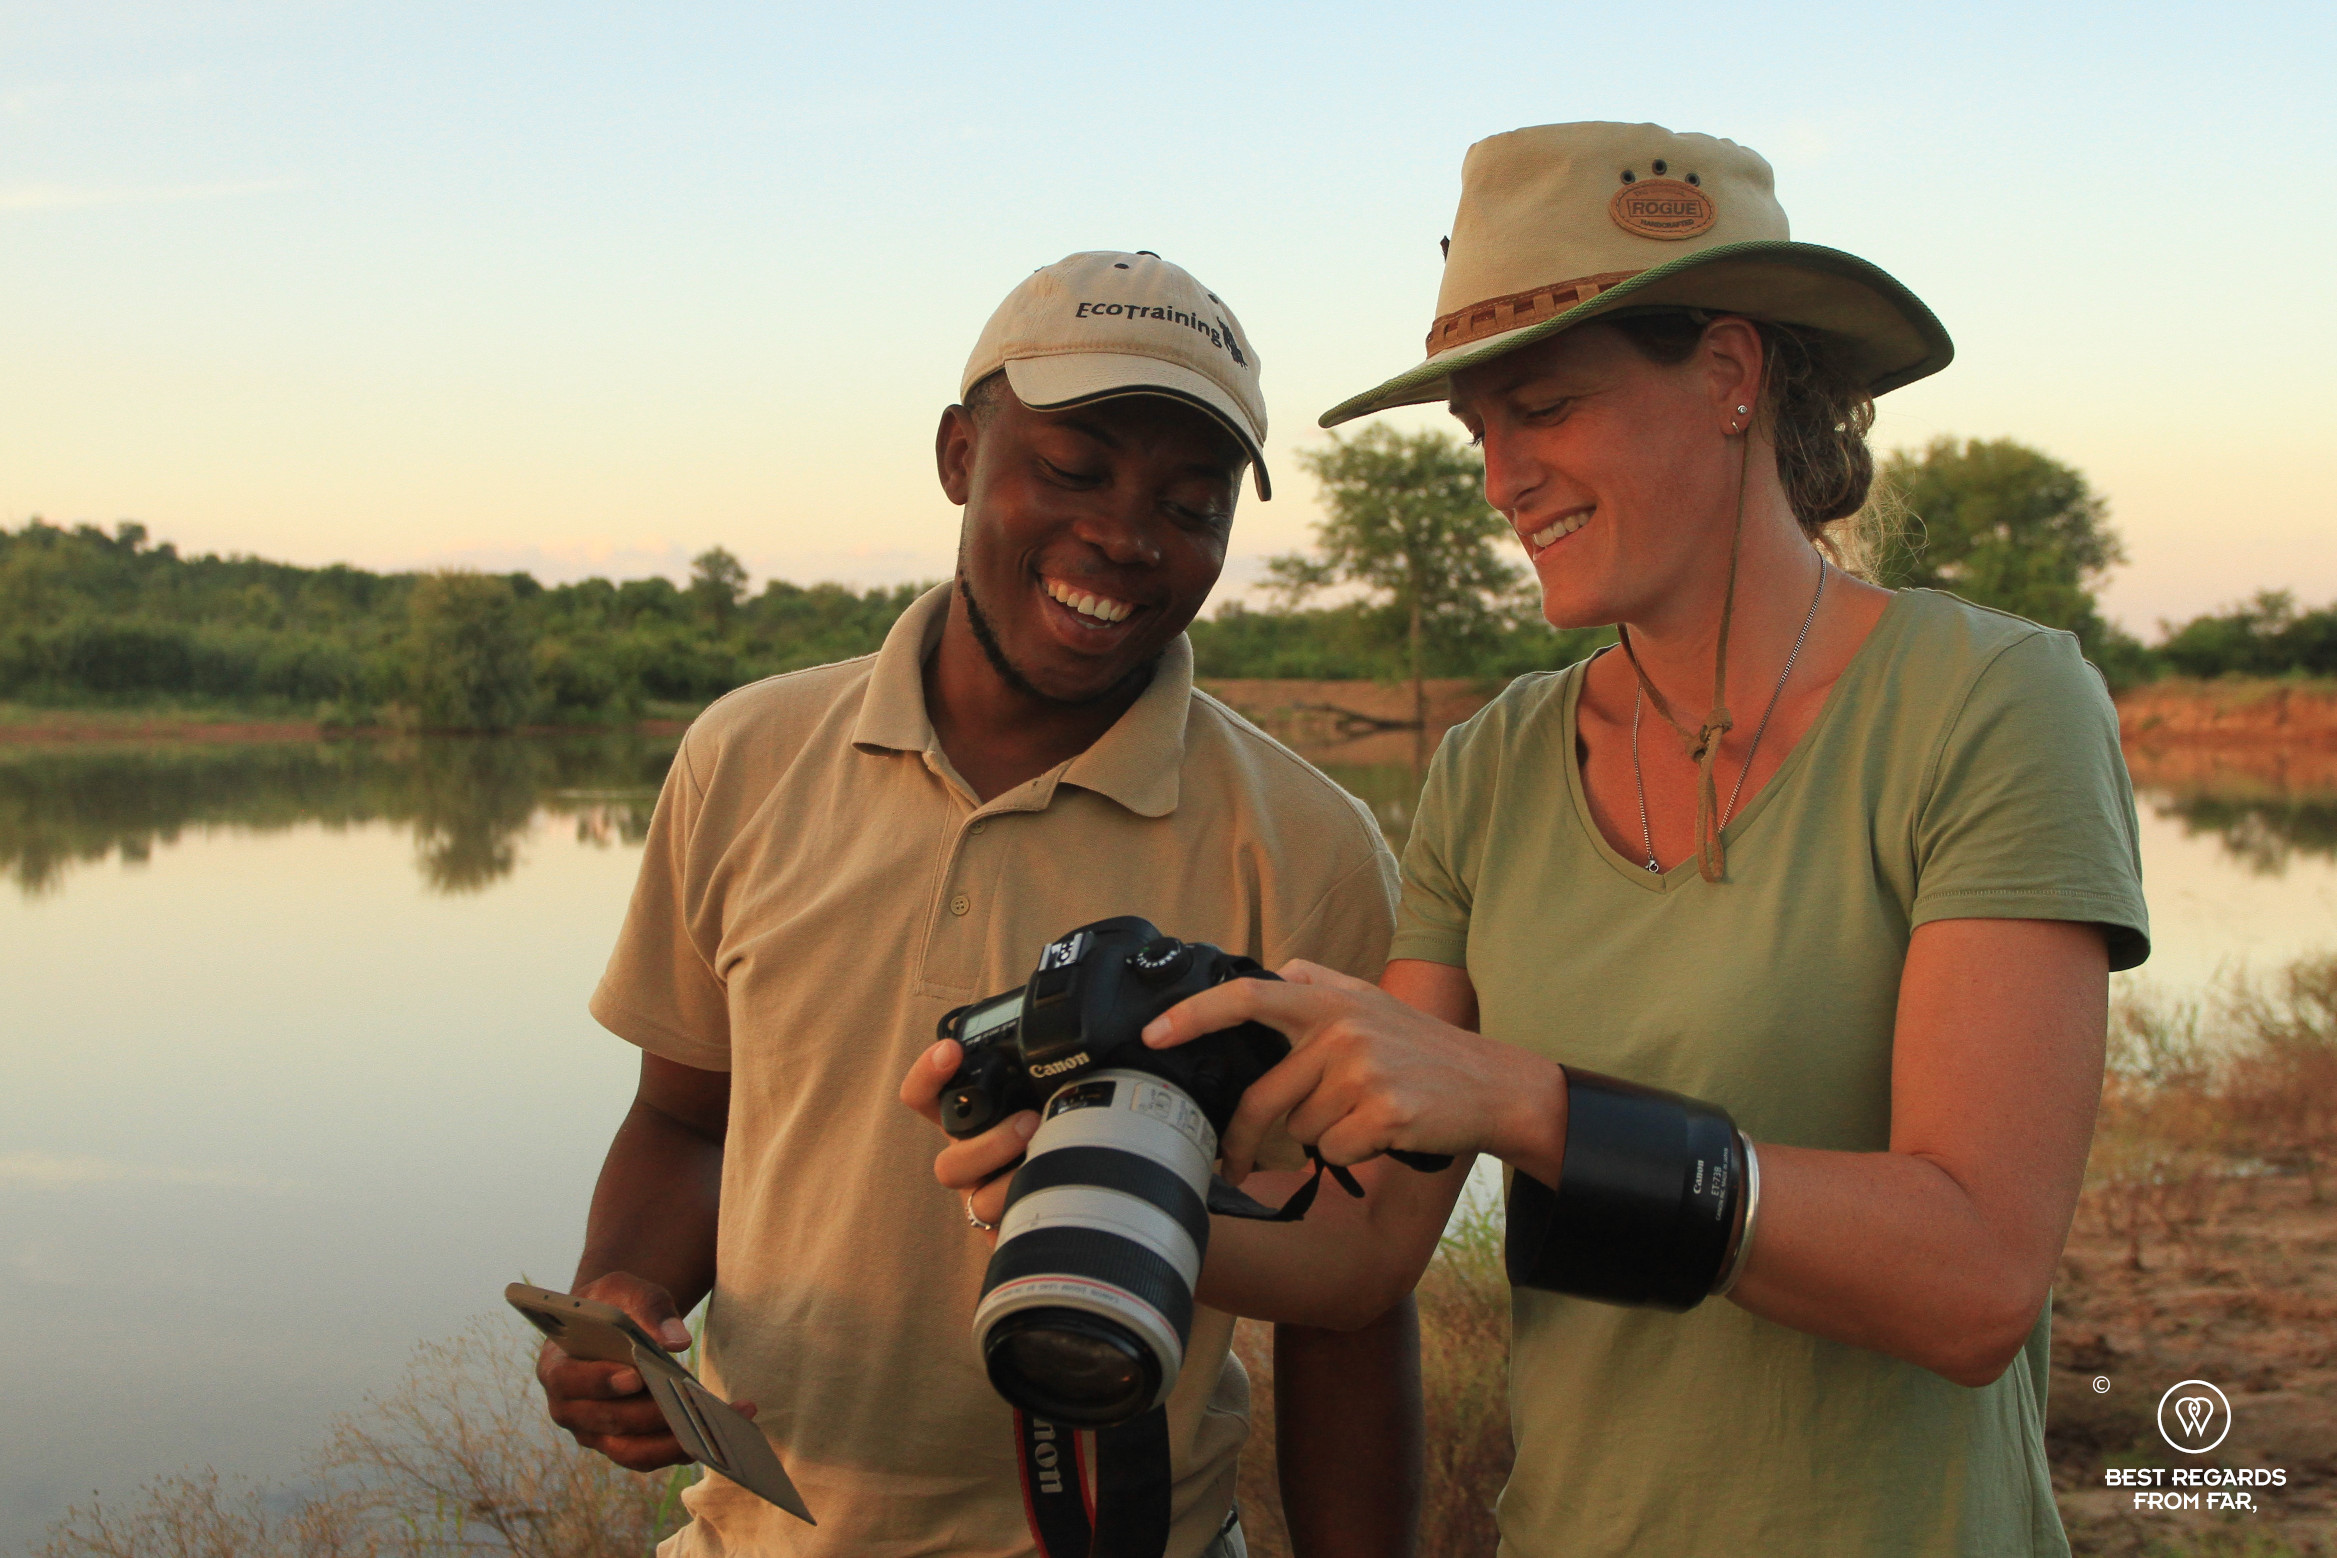 Photographer Marcella van Alphen showing a photo to EcoTracker instructor Norman Chauke in the African bush